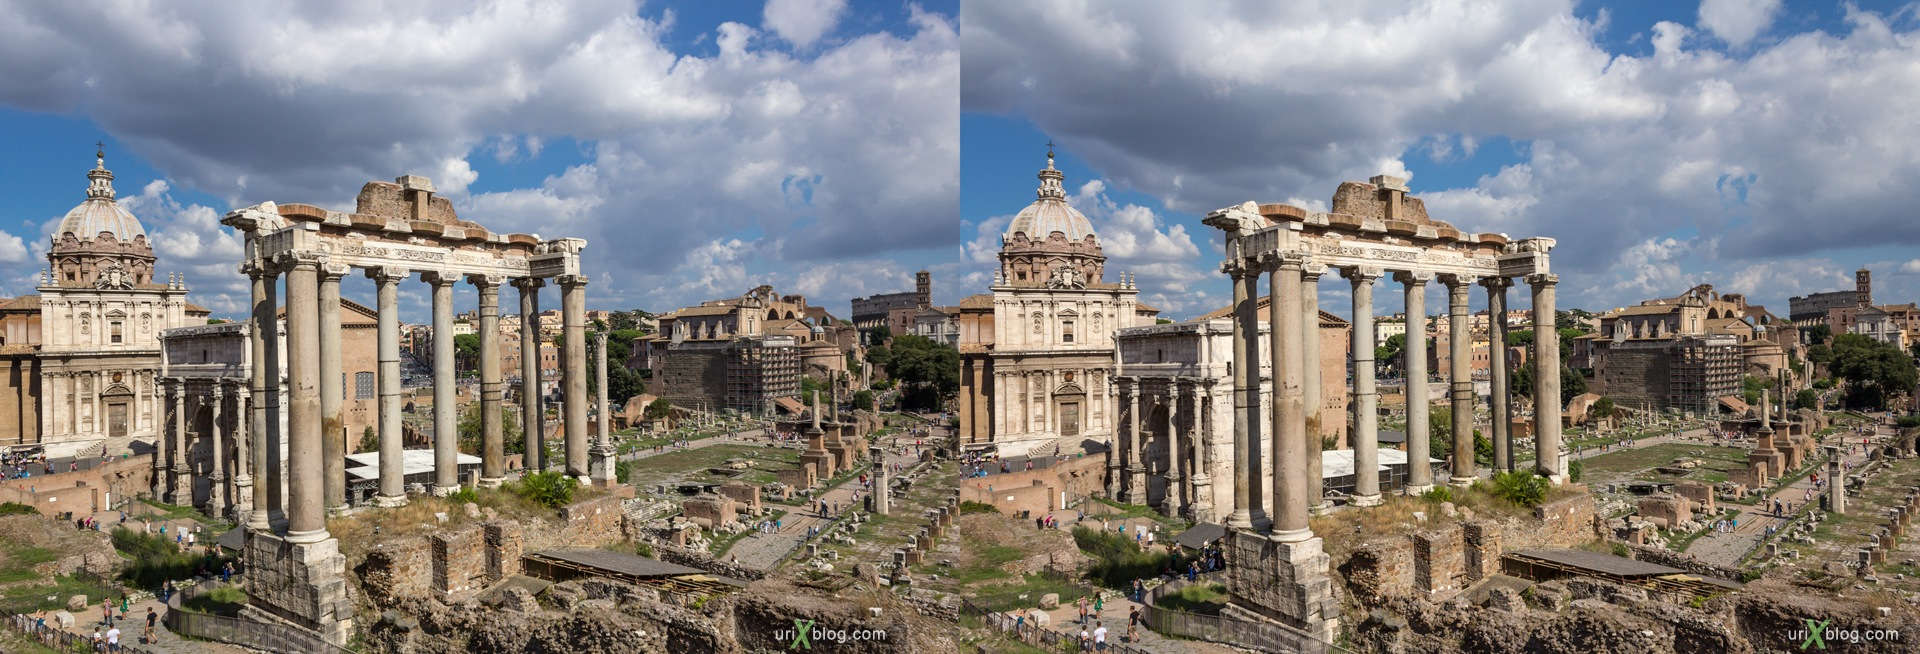 3d Stereoscopic Photos From All Over The World Urixblog